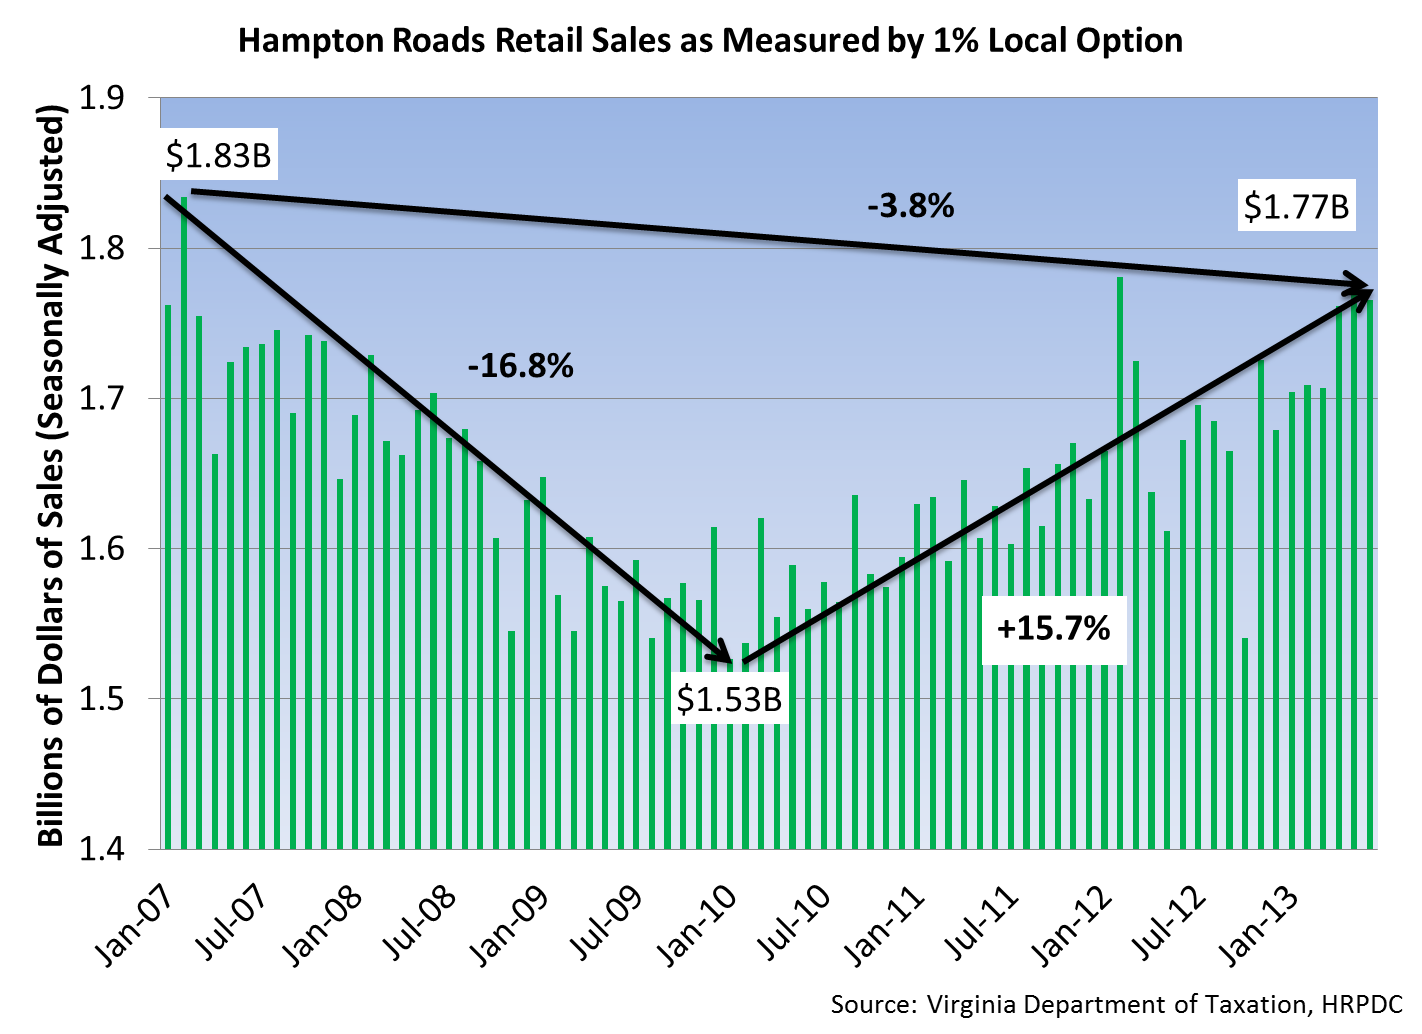 Hampton Roads Retail Sales as Mearsured by 1% Local Option